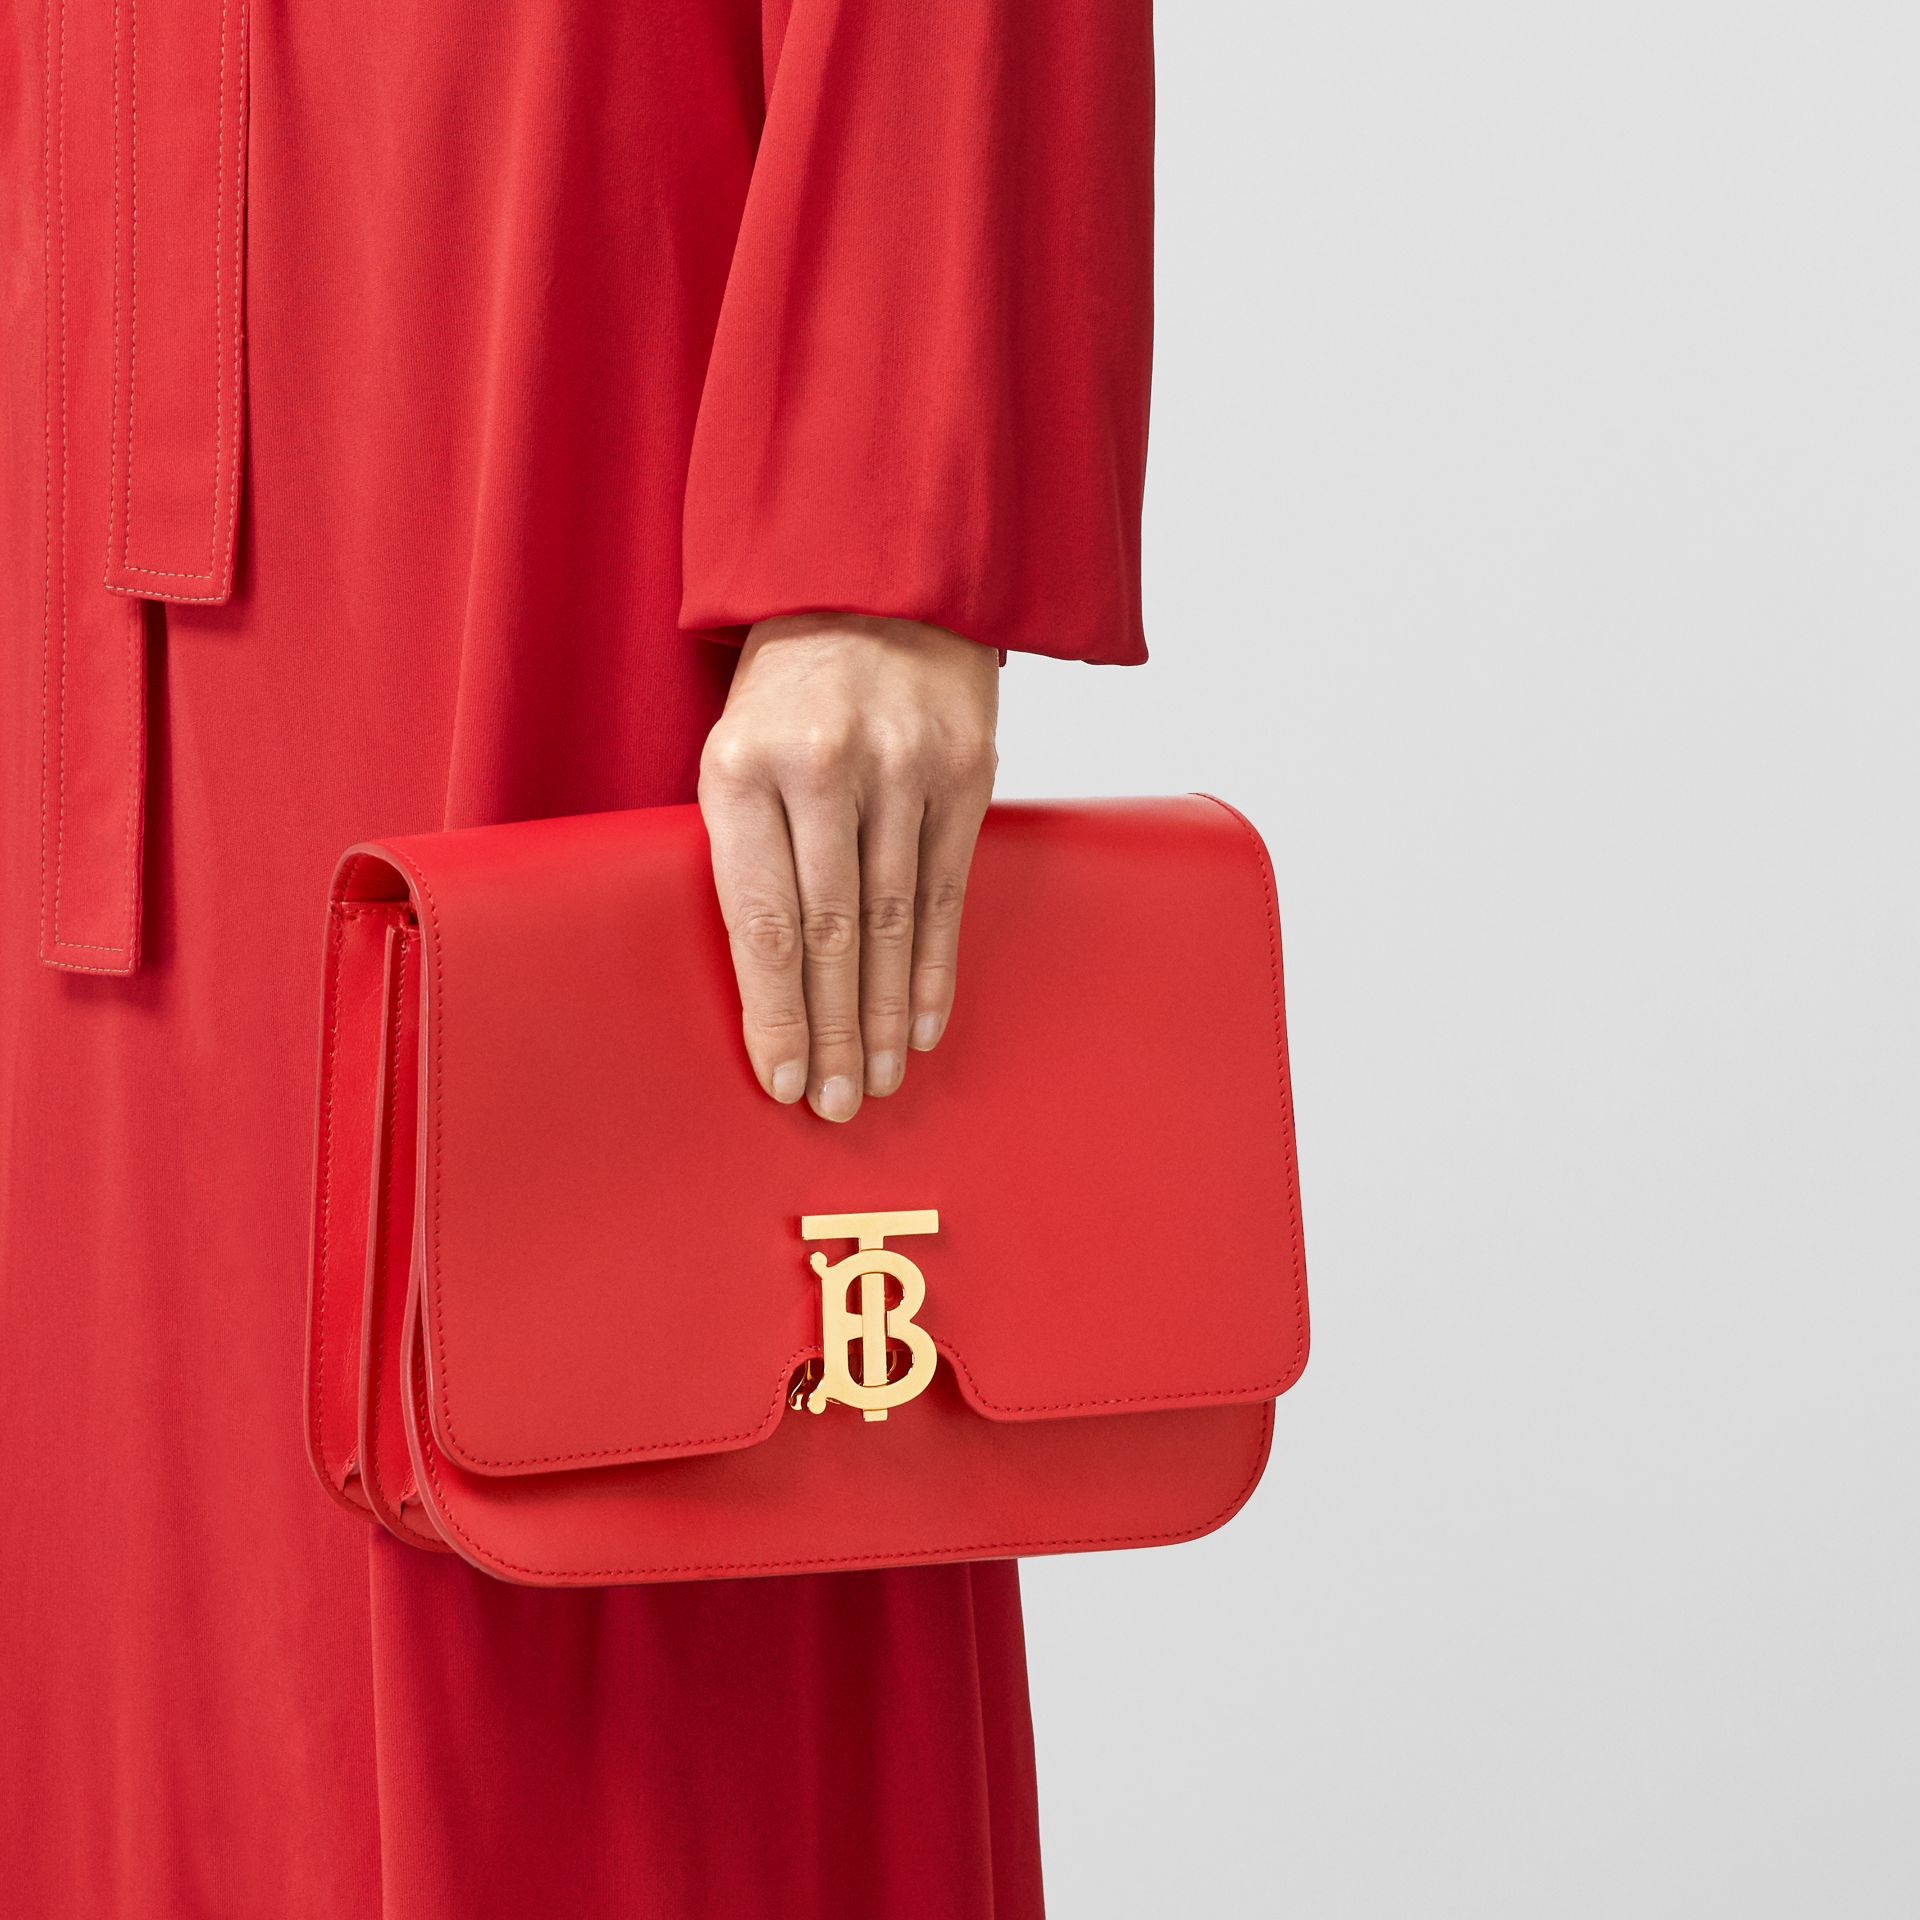 Medium Leather TB Bag in Bright Red | Burberry - gallery image 8